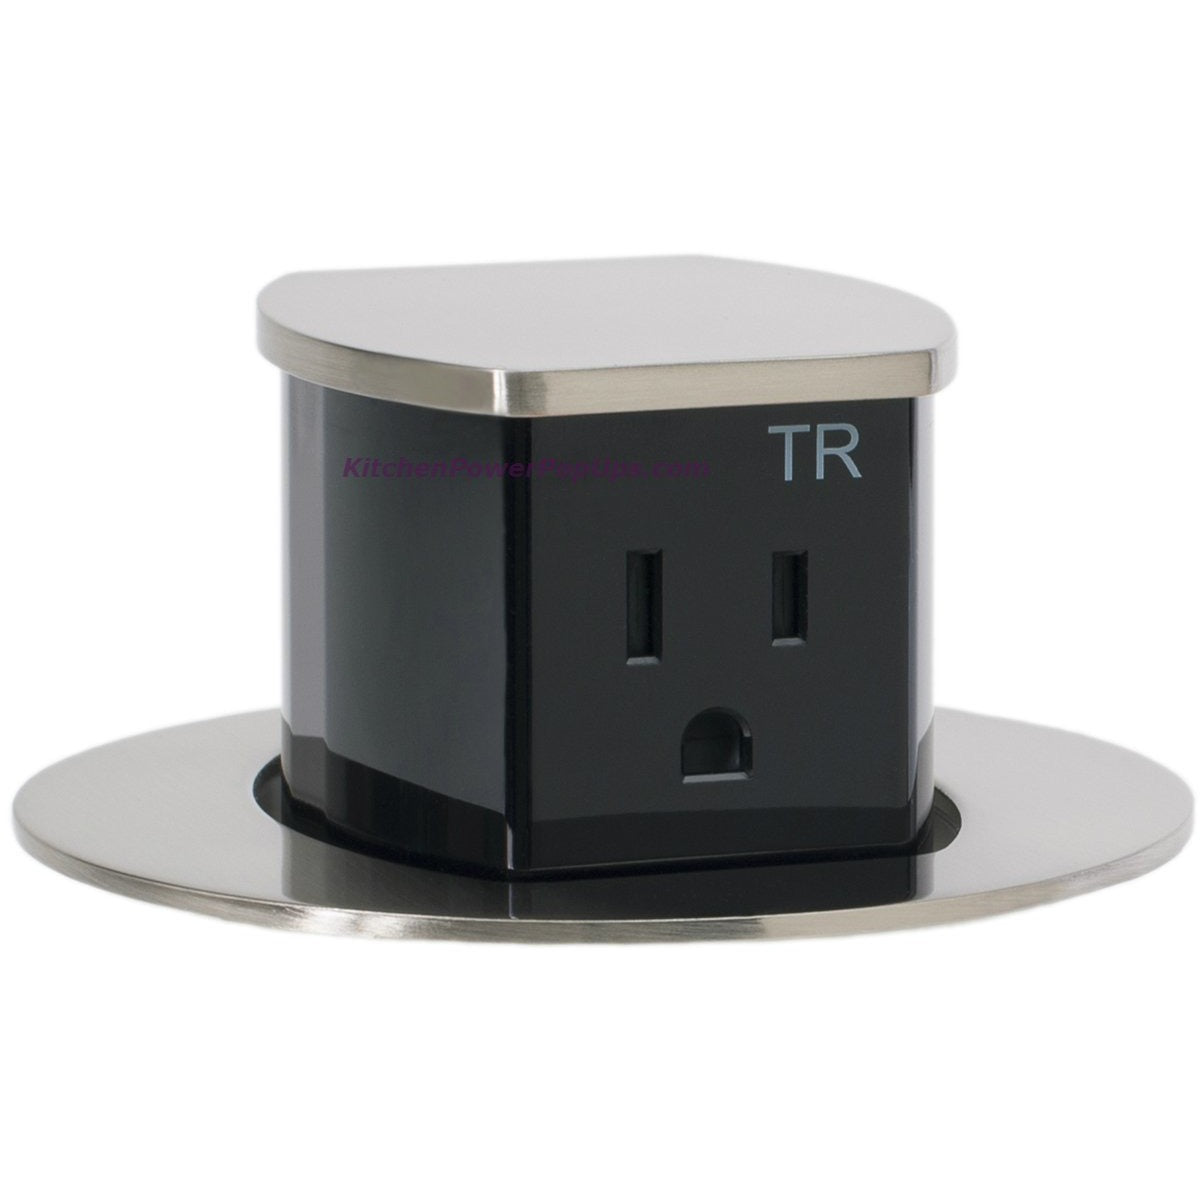 Hubbell Rct201ni Waterproof Pop Up Flush Mount Counter Outlet